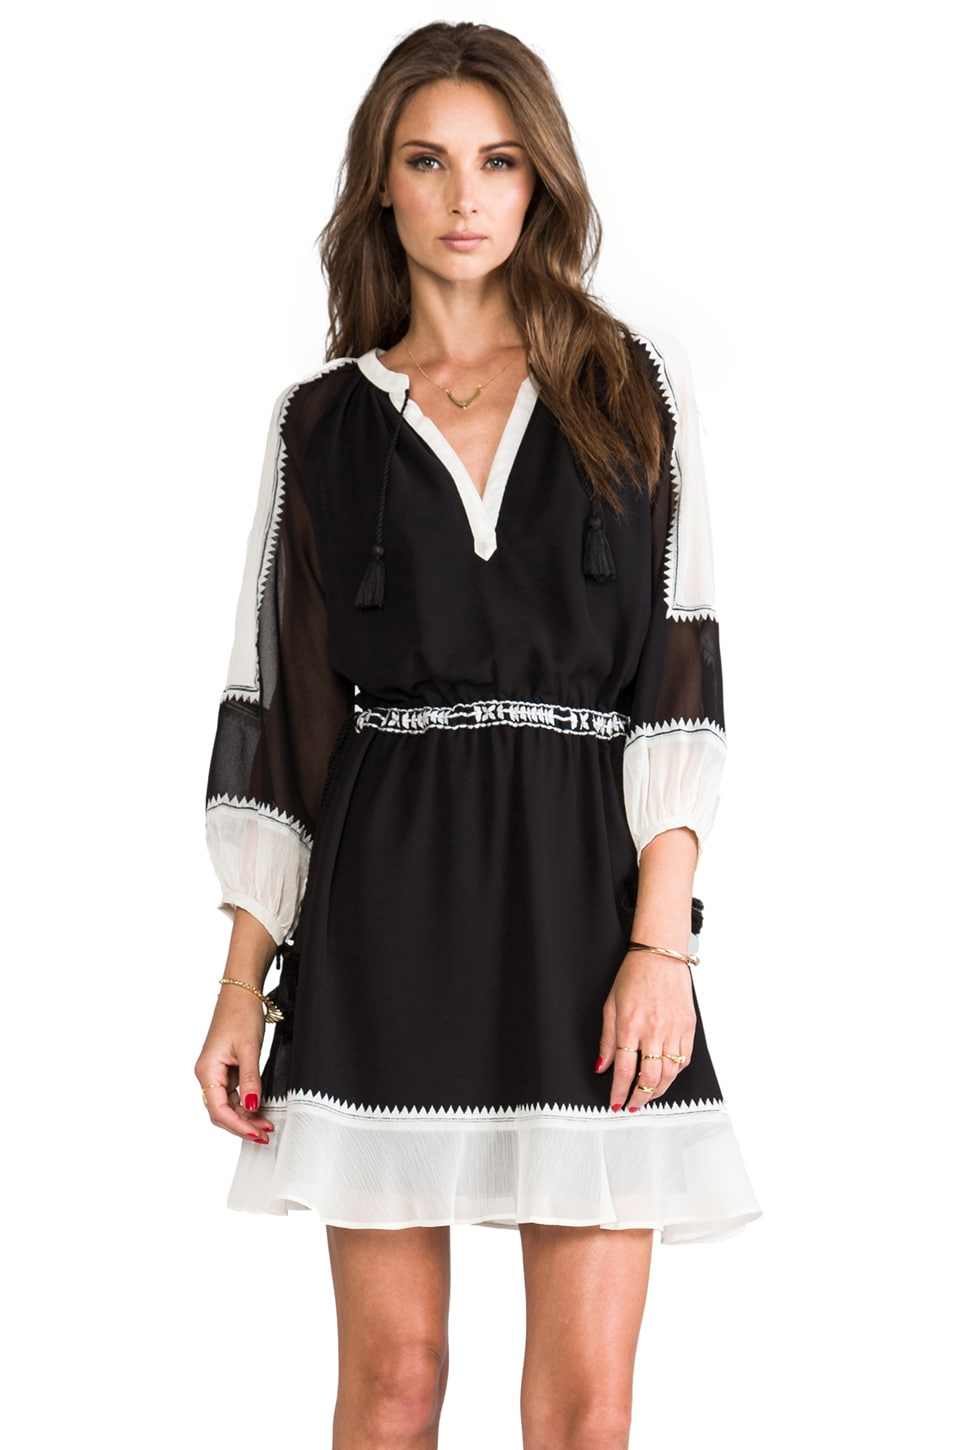 Juicy Couture Yasmin Dress in Pitch Black/Angel